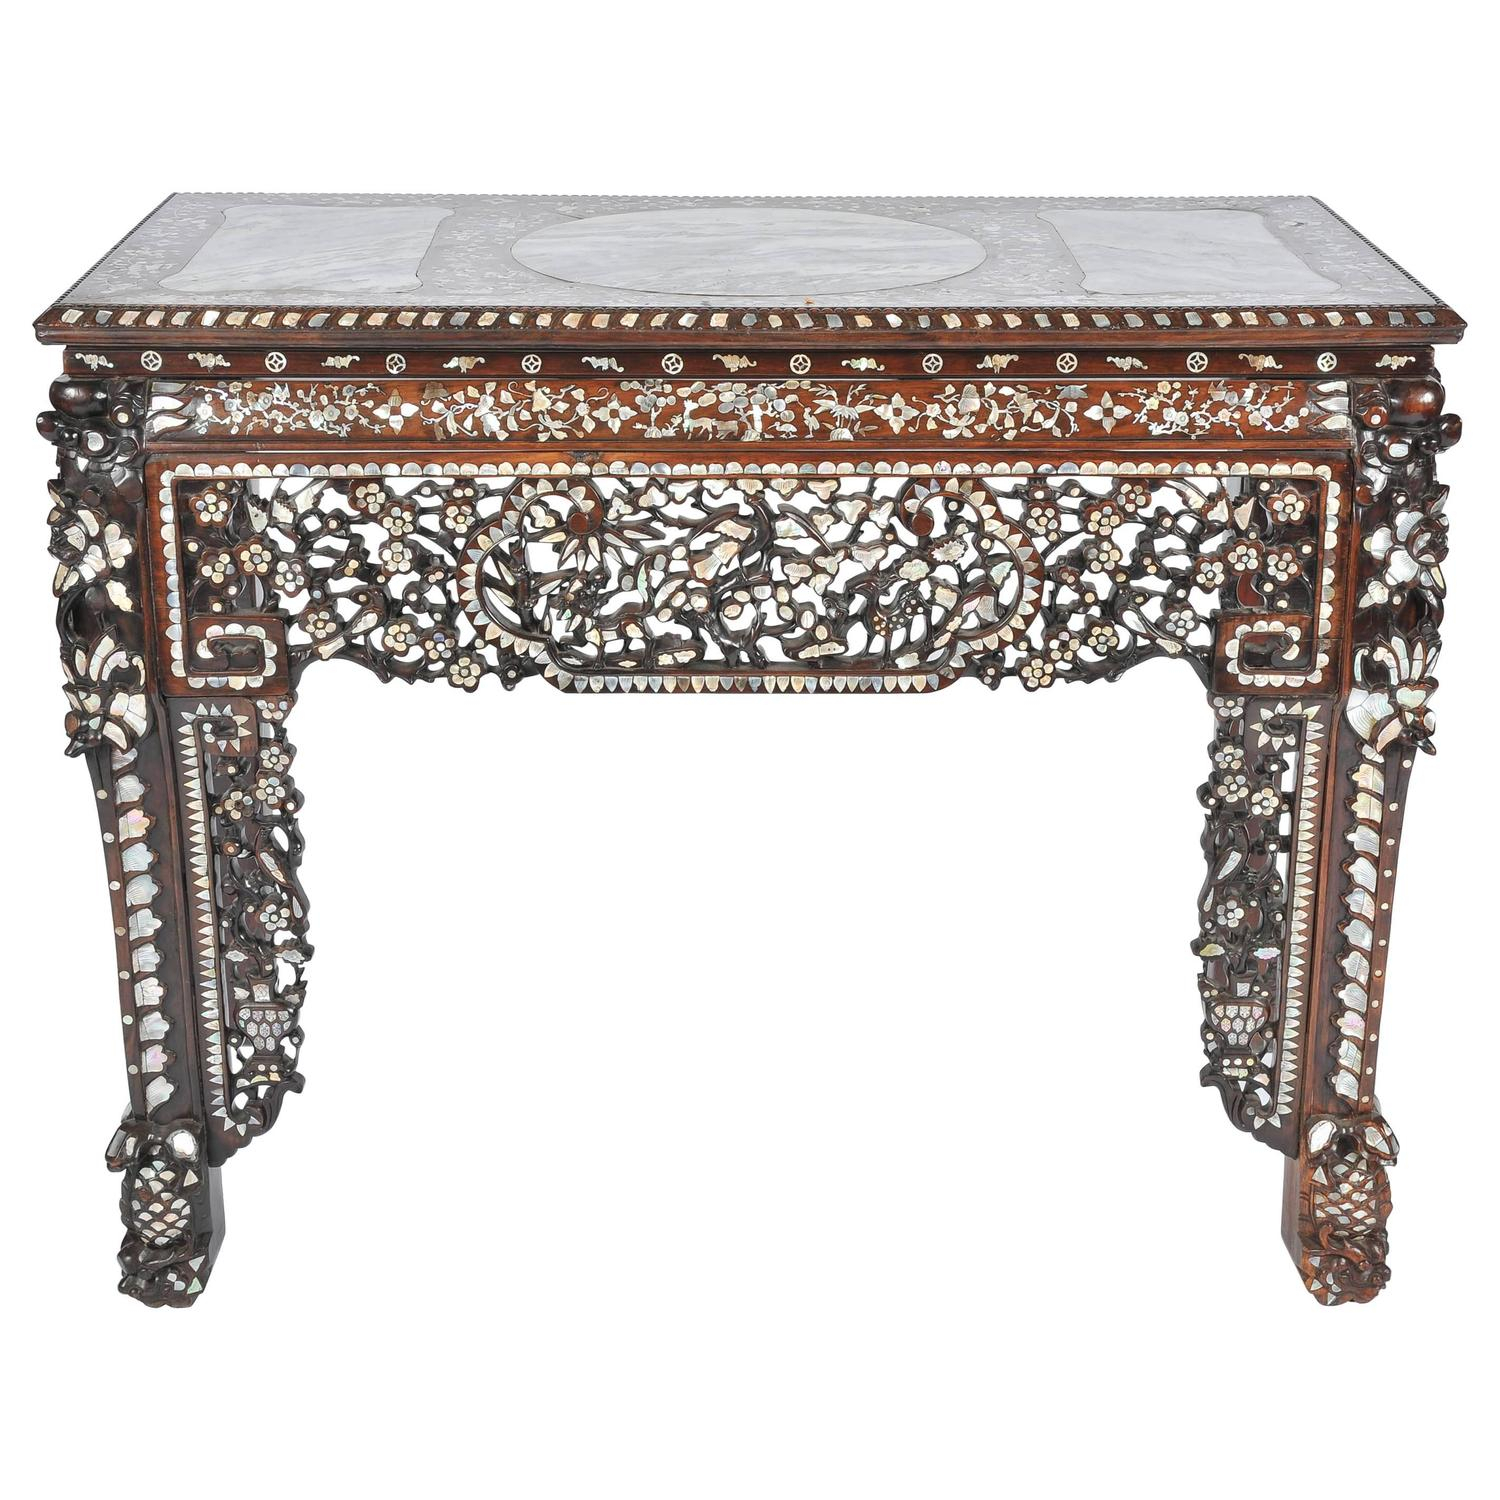 Mother Of Pearl Console Tables – 9 For Sale At 1Stdibs Pertaining To Orange Inlay Console Tables (View 23 of 30)